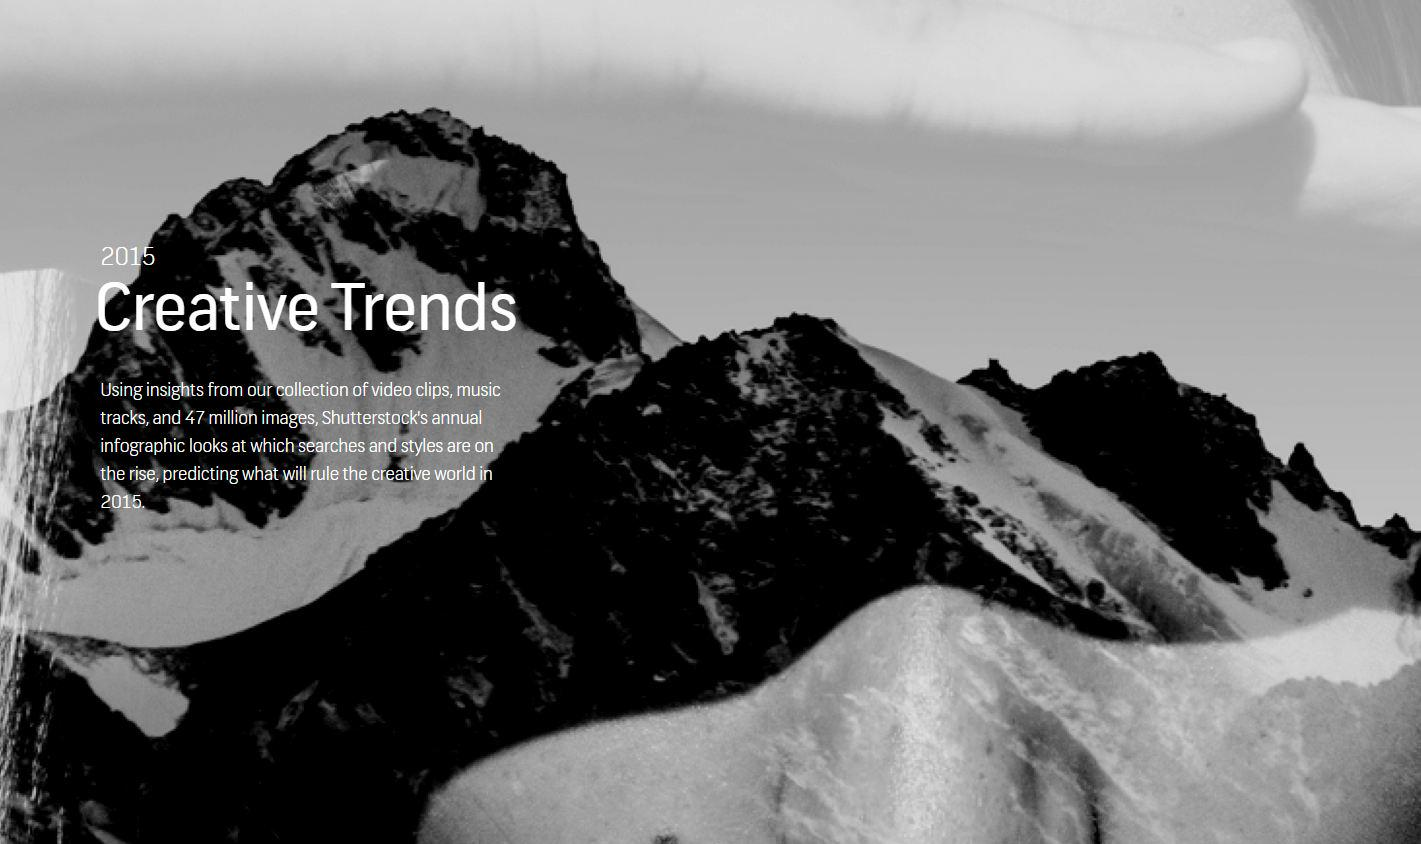 Shutterstock has released its 2015 Creative Trends Report - read more here: http://t.co/2RMHpQVHT9 #creative http://t.co/ZlvEoDeCMG